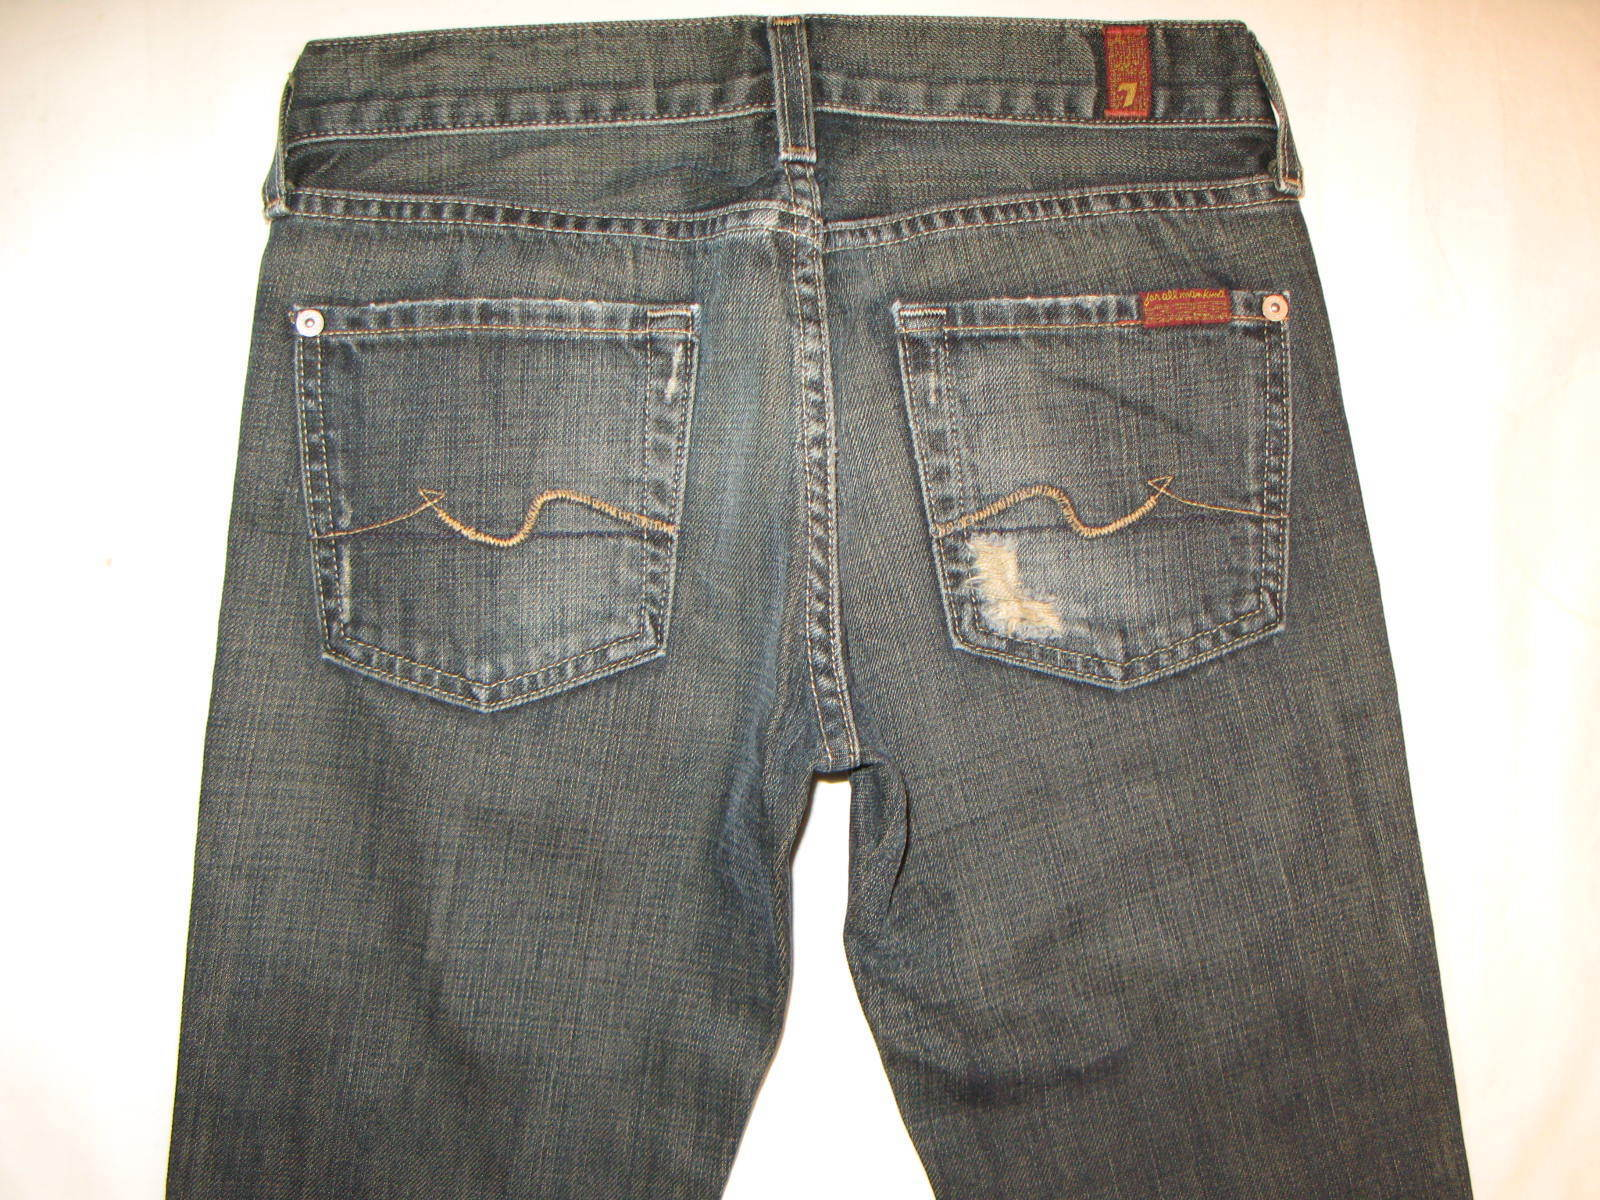 7 for all Mankind Womens Bootcut Jeans Sz 25 100% Cotton Dark Distressed